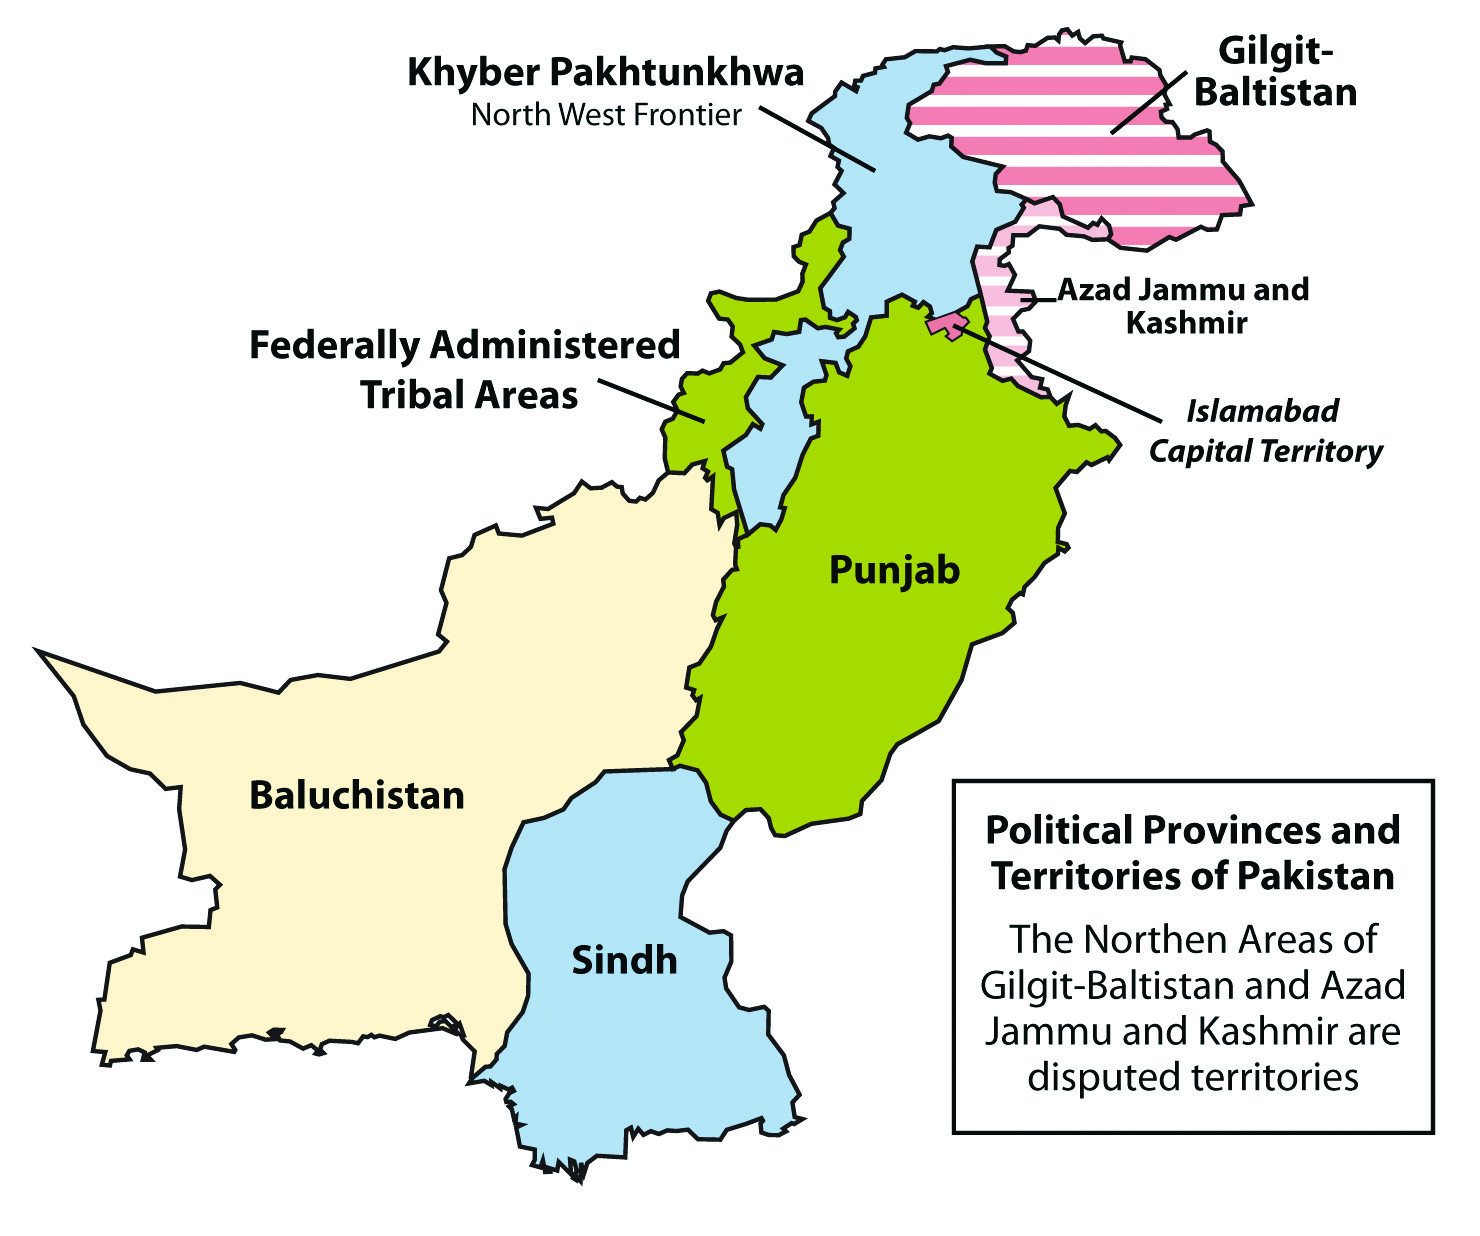 poverty in pakistan s rural regions 31 poverty across districts in irrigated punjab, pakistan waqar a jehangir, intizar hussain, muhammad ashfaq and muhammad mudasser1 abstract poverty is one of the main issues that is worrying most of the third world nations.